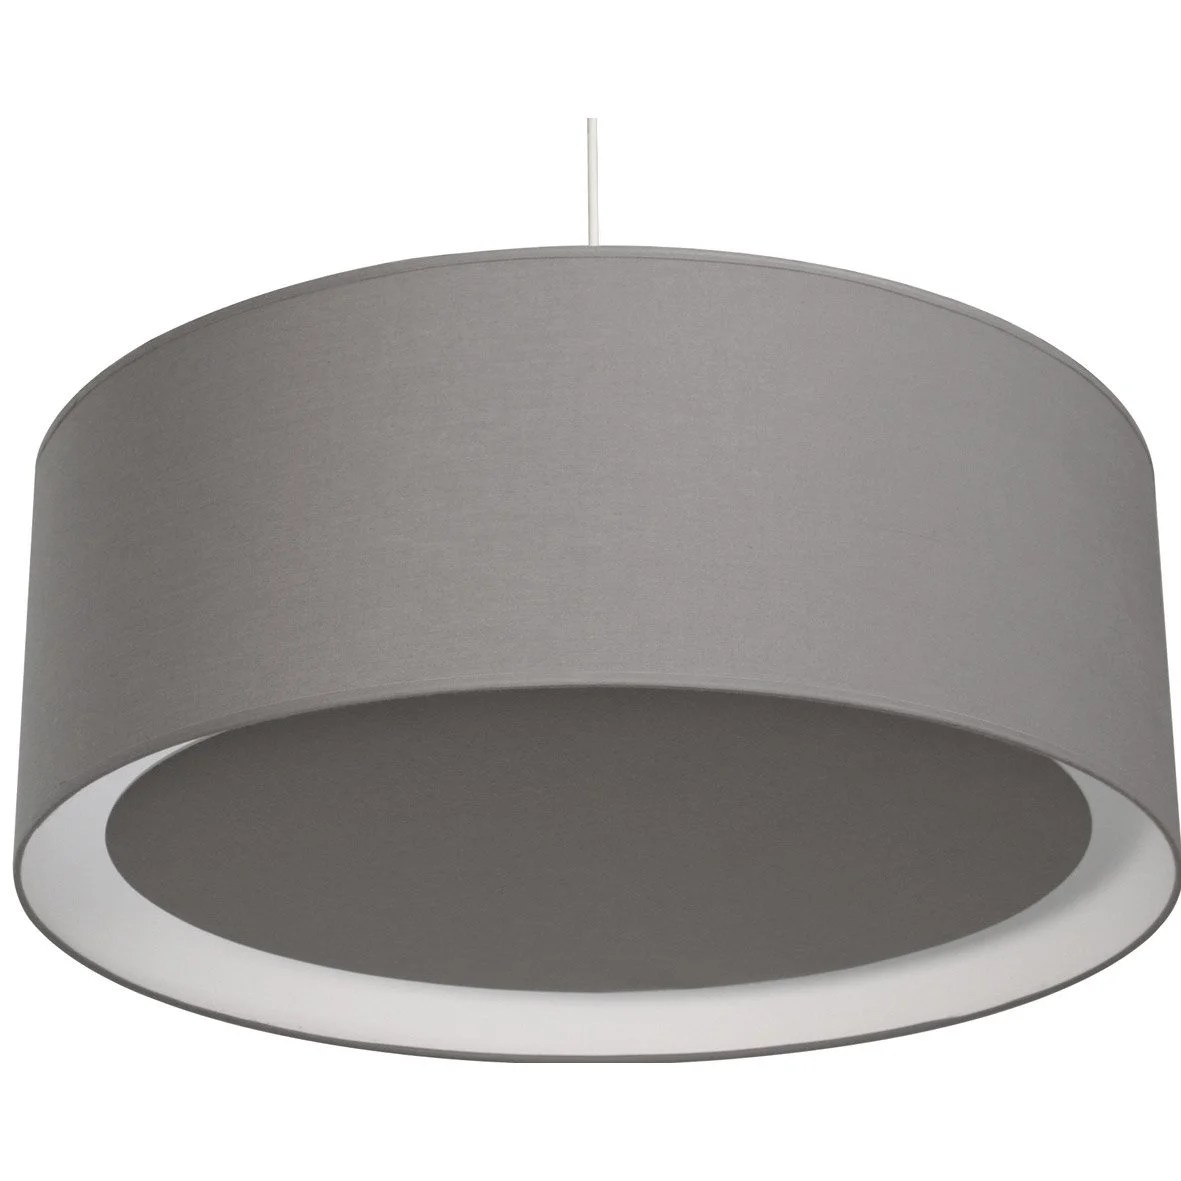 Suspension Luminaire Diamètre 60 Cm Suspension E27 Moderne Essentiel Coton Gris Galet N3 1 X 60 W Inspire